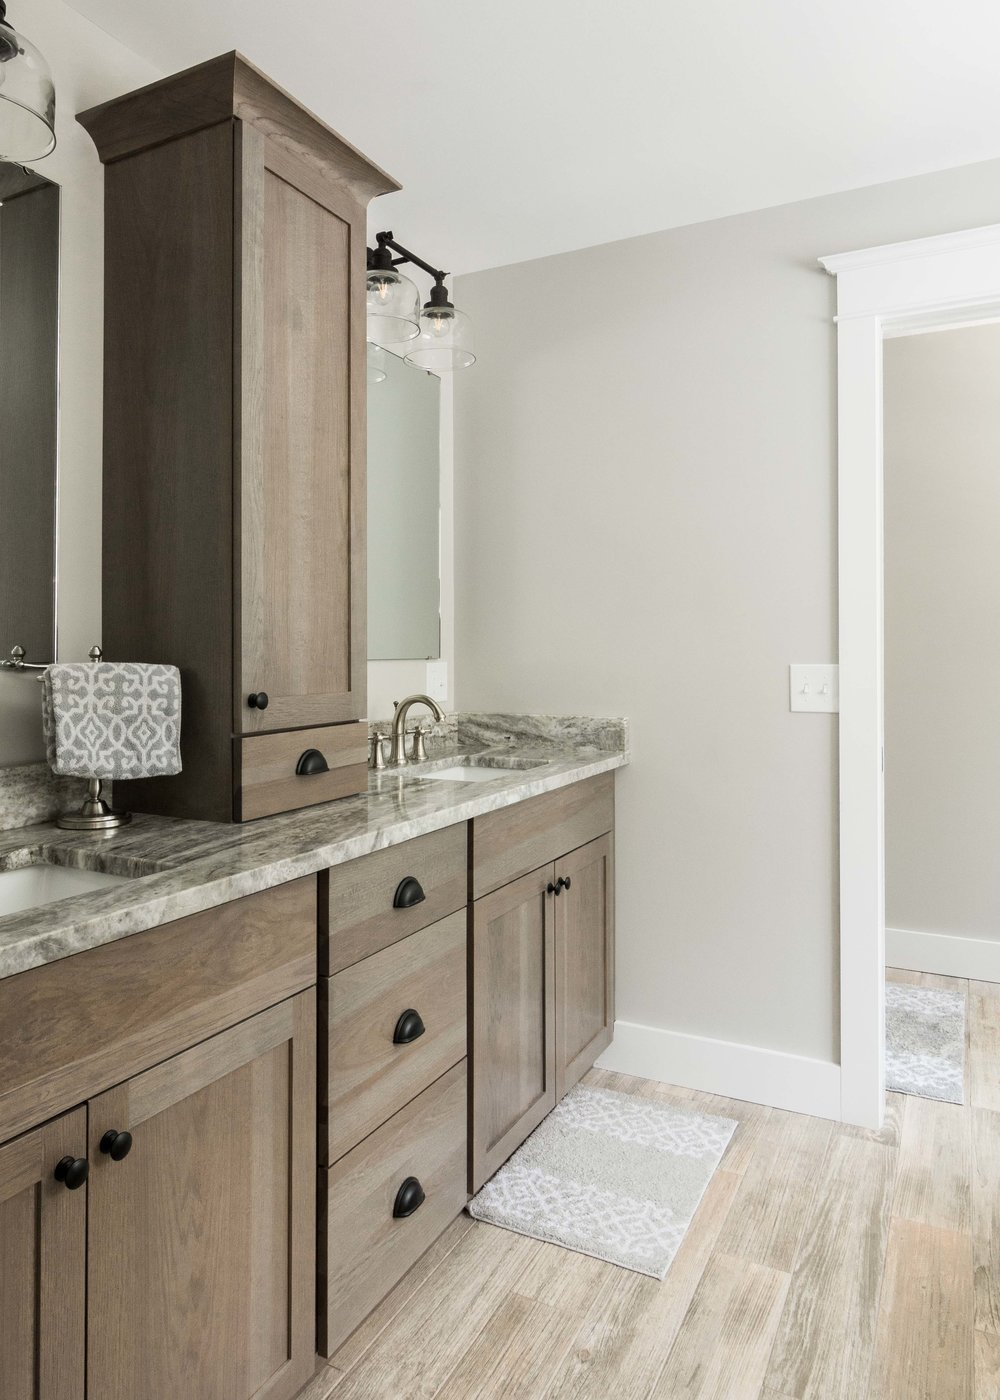 Birchwood Farmhouse, Gorham, Maine, Master Bathroom